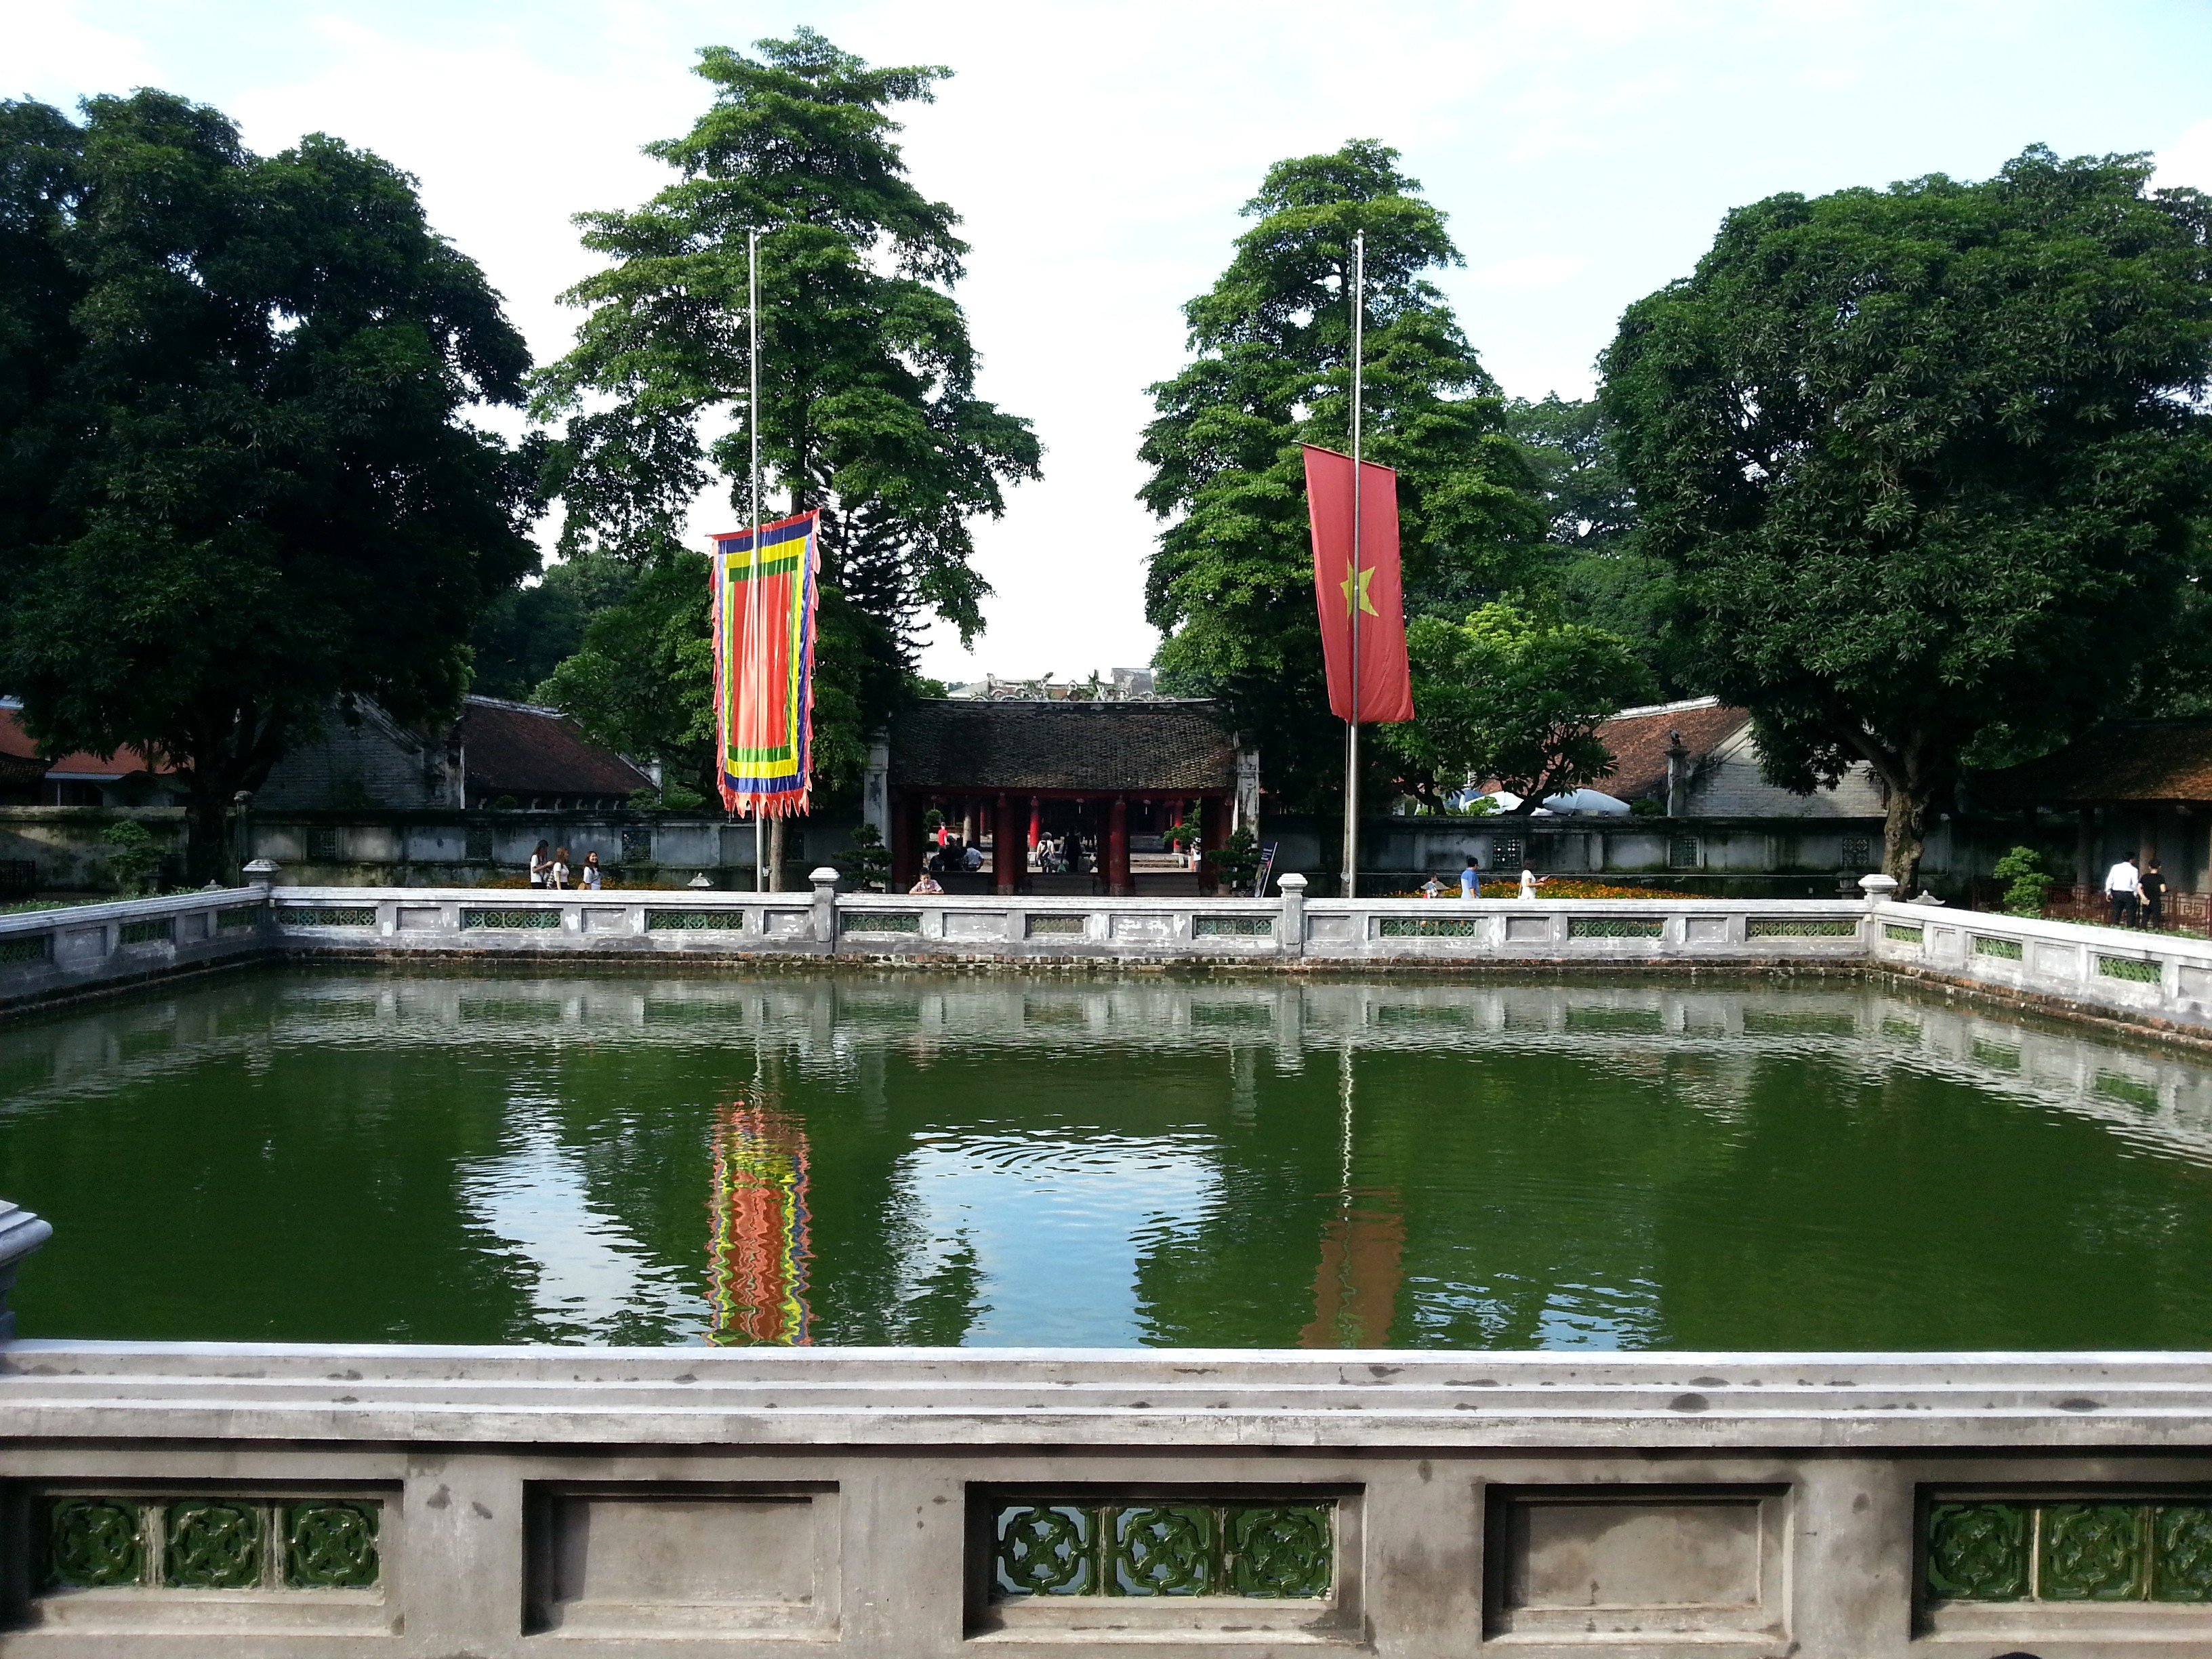 Thien Quang well in the Third Courtyard